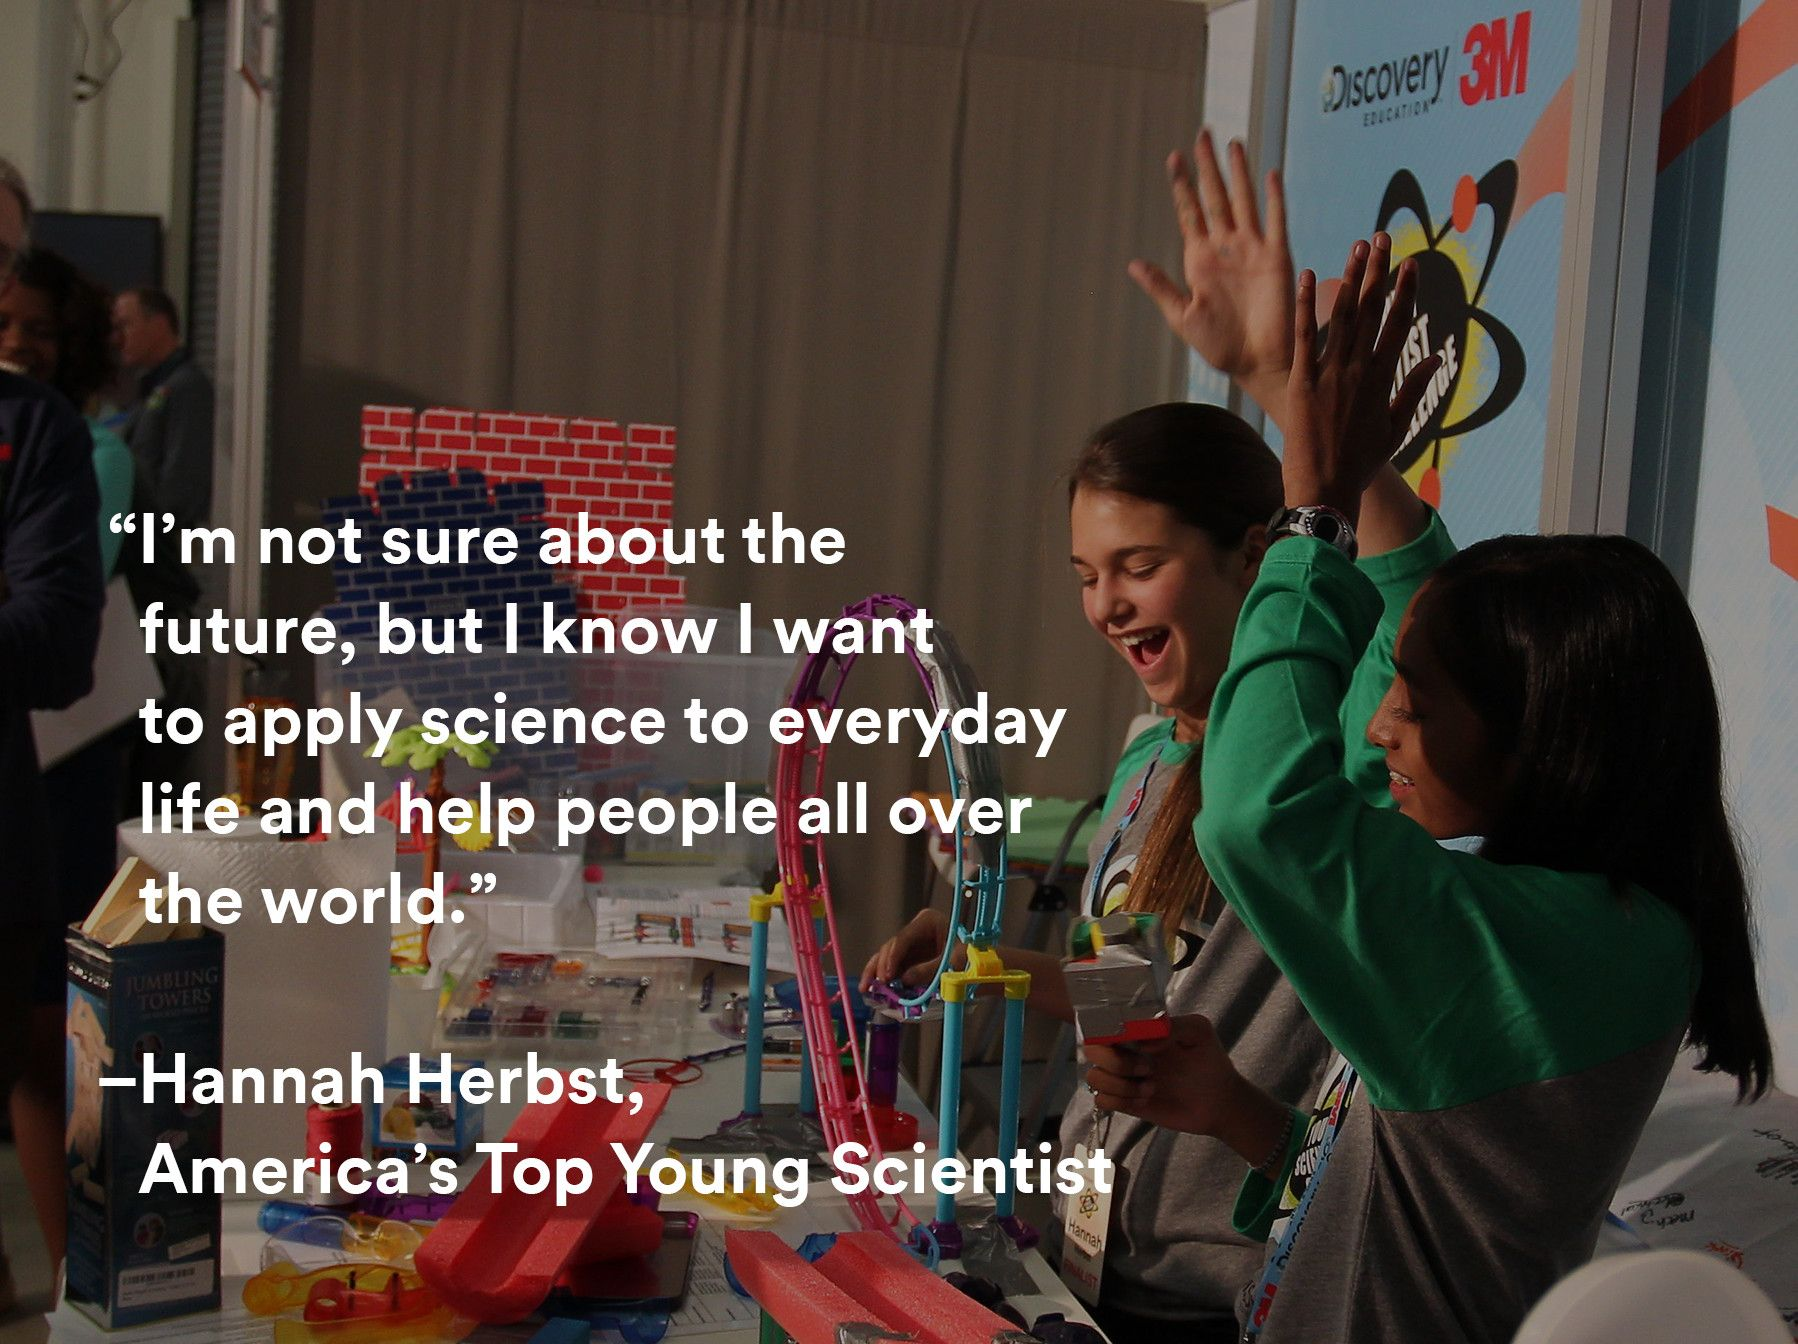 Inspiring words spoken by the winner of the 2015 Discovery Education 3M Young Scientist Challenge. #science #inspiration #quote #STEM #YSC